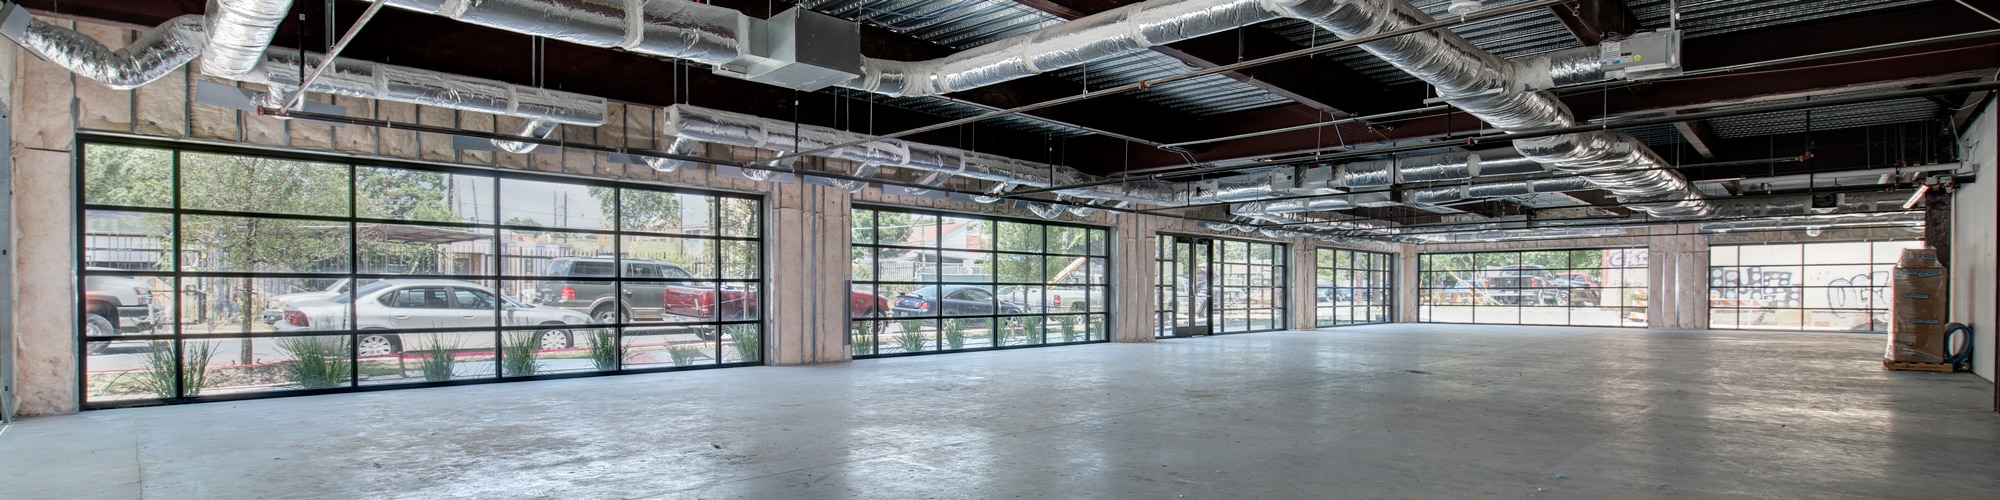 Eastside Village Vacant Space | 645 E. 6th Street in Austin, Texas